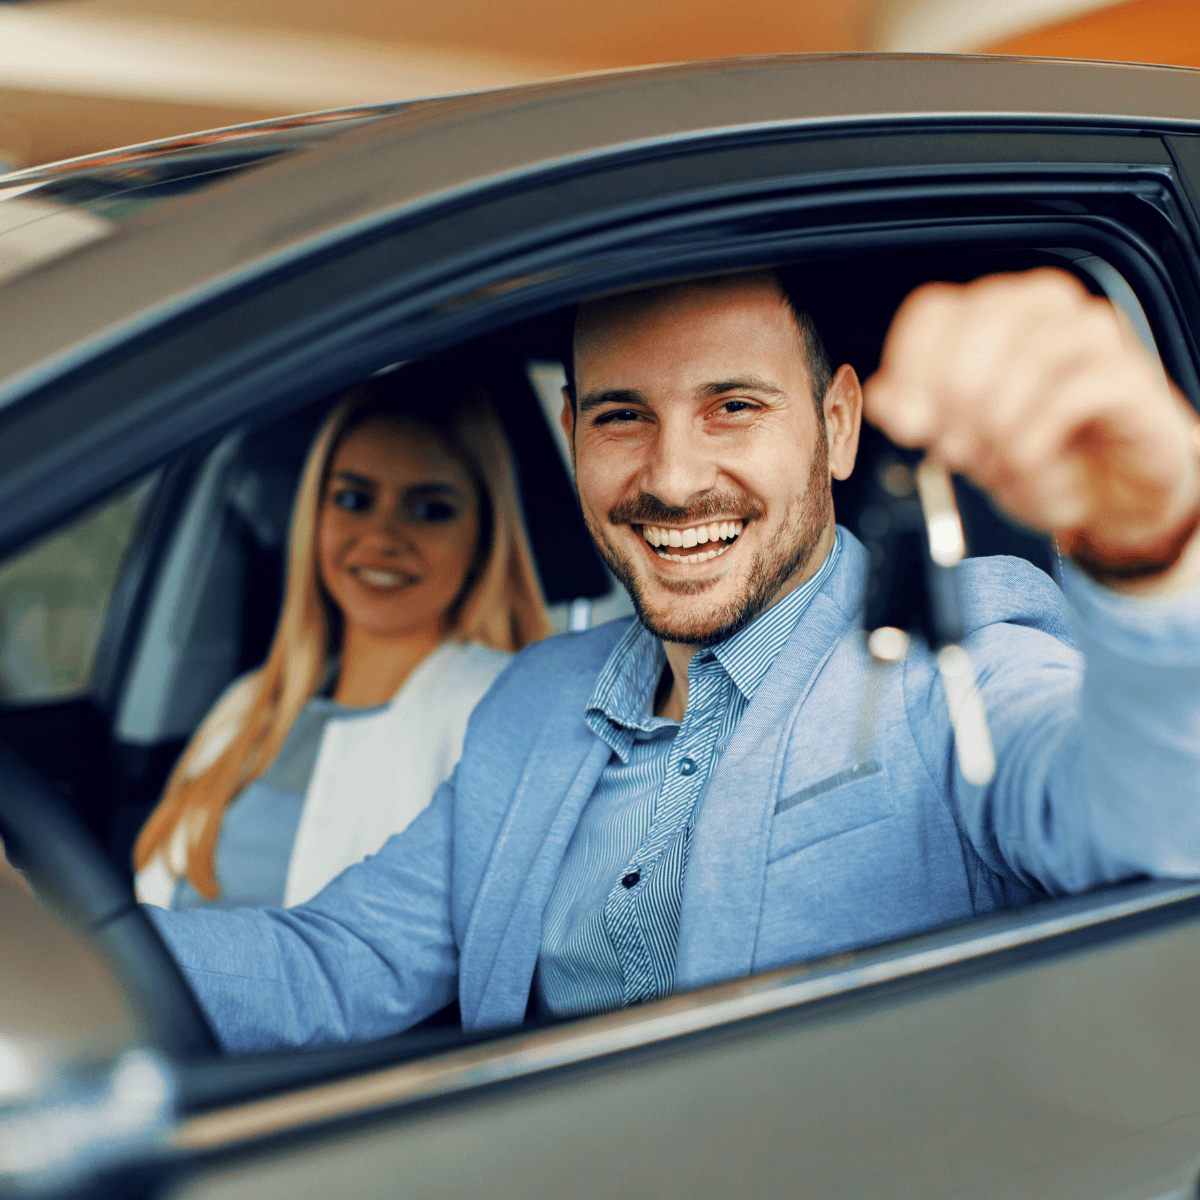 How To Apply For New Vehicle Insurance